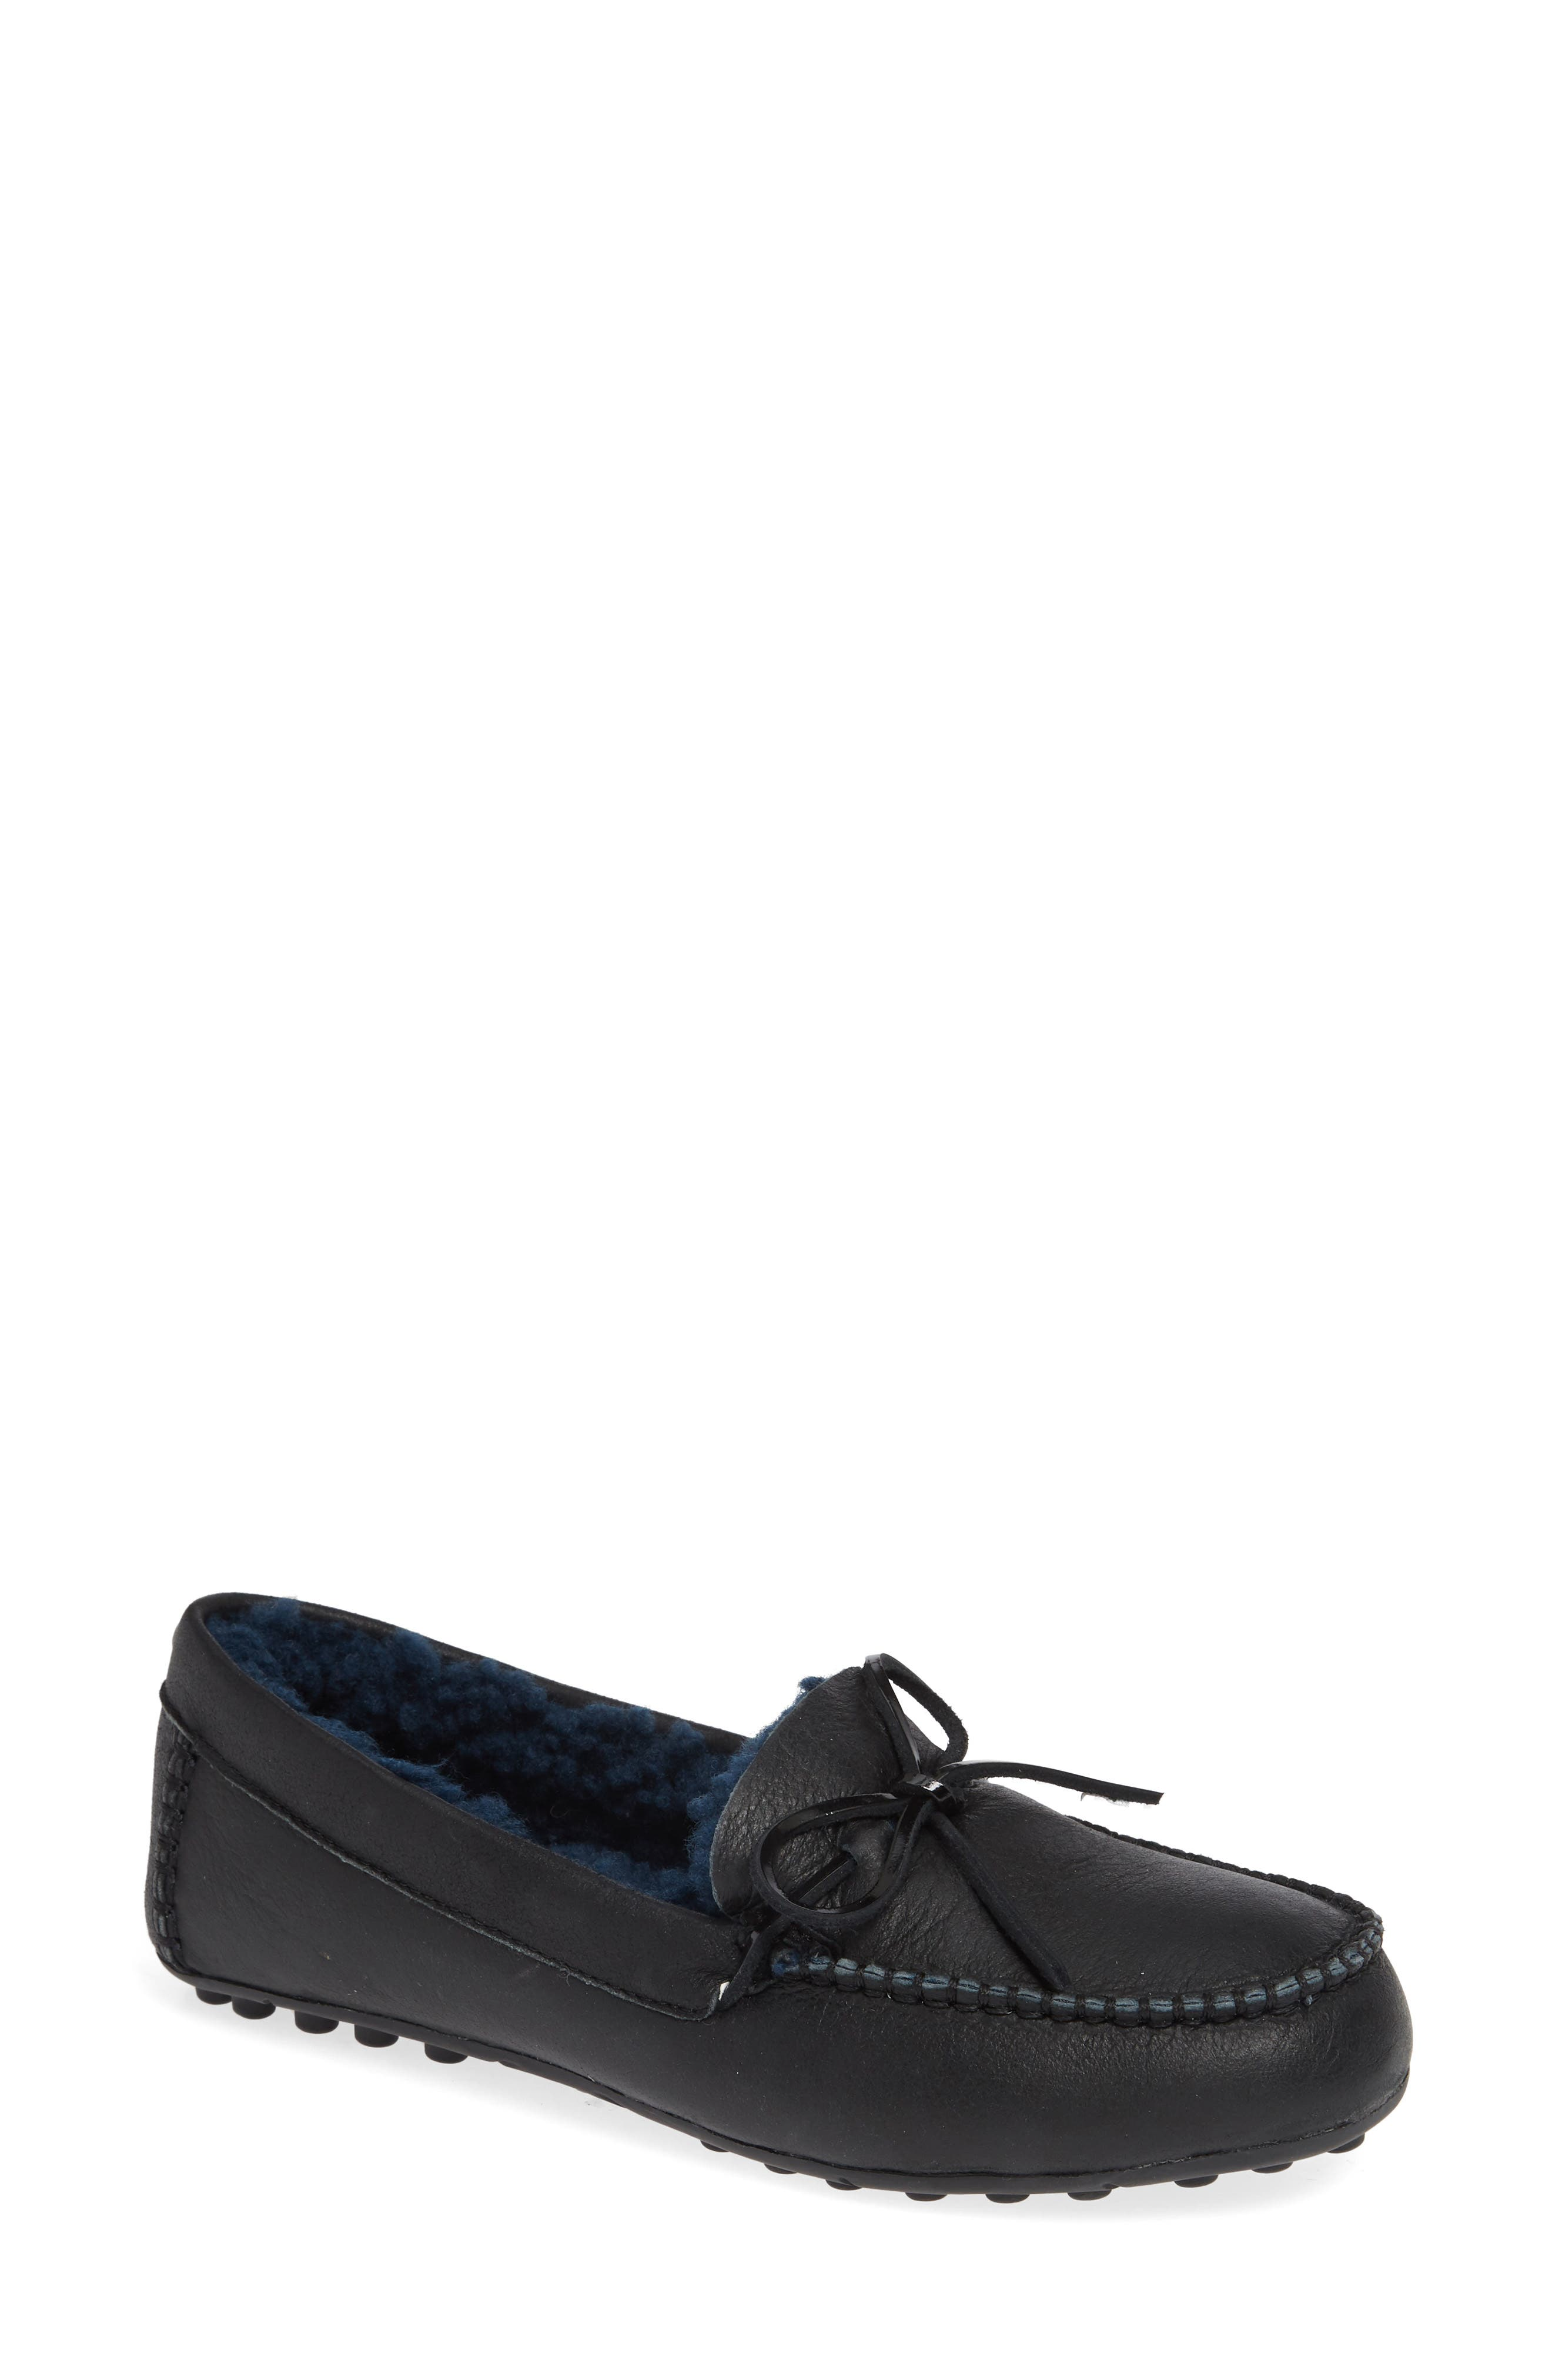 UGG<SUP>®</SUP> Deluxe Loafer, Main, color, BLACK LEATHER